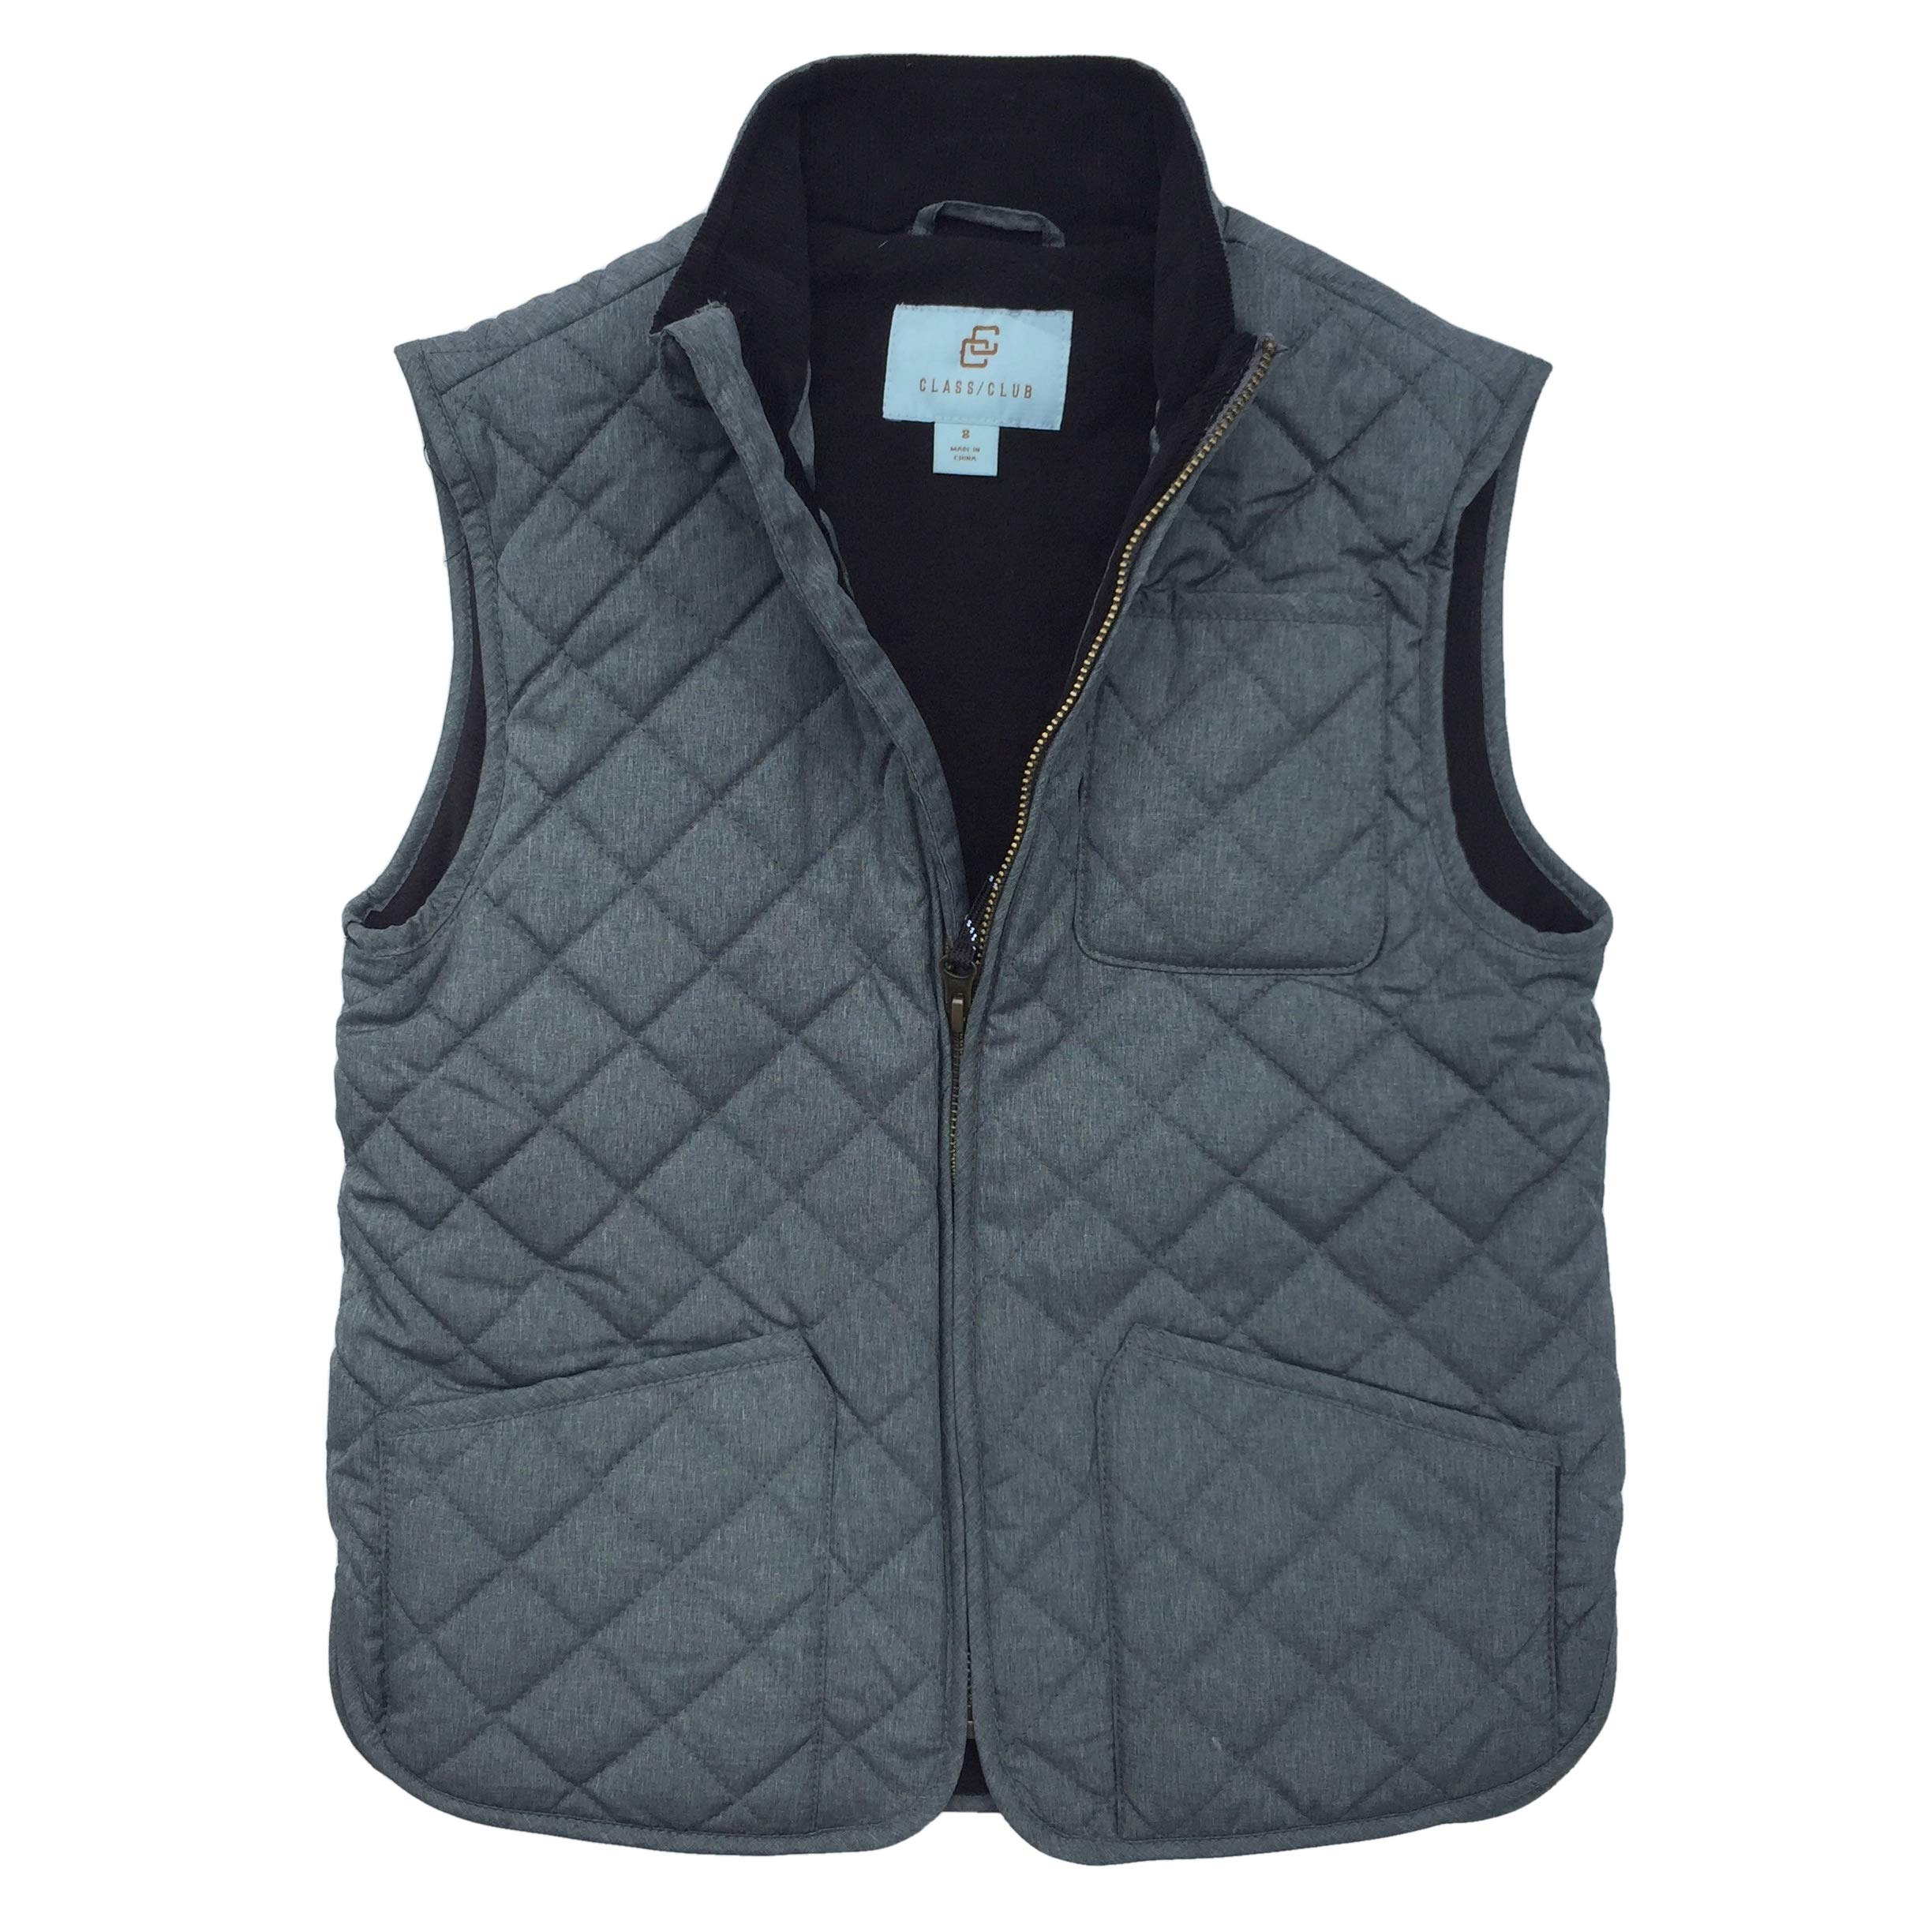 Class Club Little and Big Boys' Microfiber Quilted Vest Outerwear (Charcoal, 10/12)